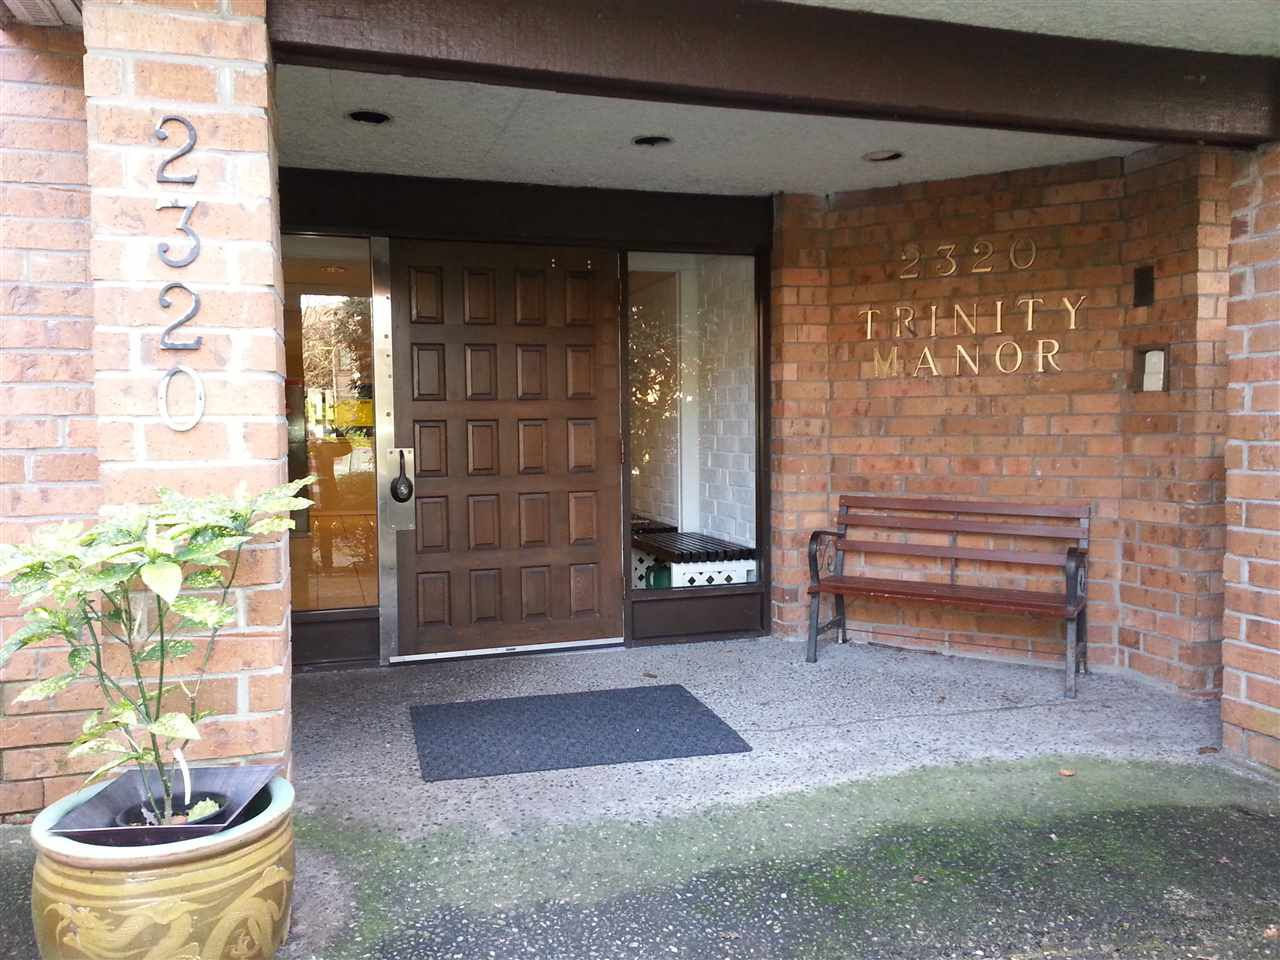 Main Photo: 304 2320 TRINITY Street in Vancouver: Hastings Condo for sale (Vancouver East)  : MLS®# R2037407